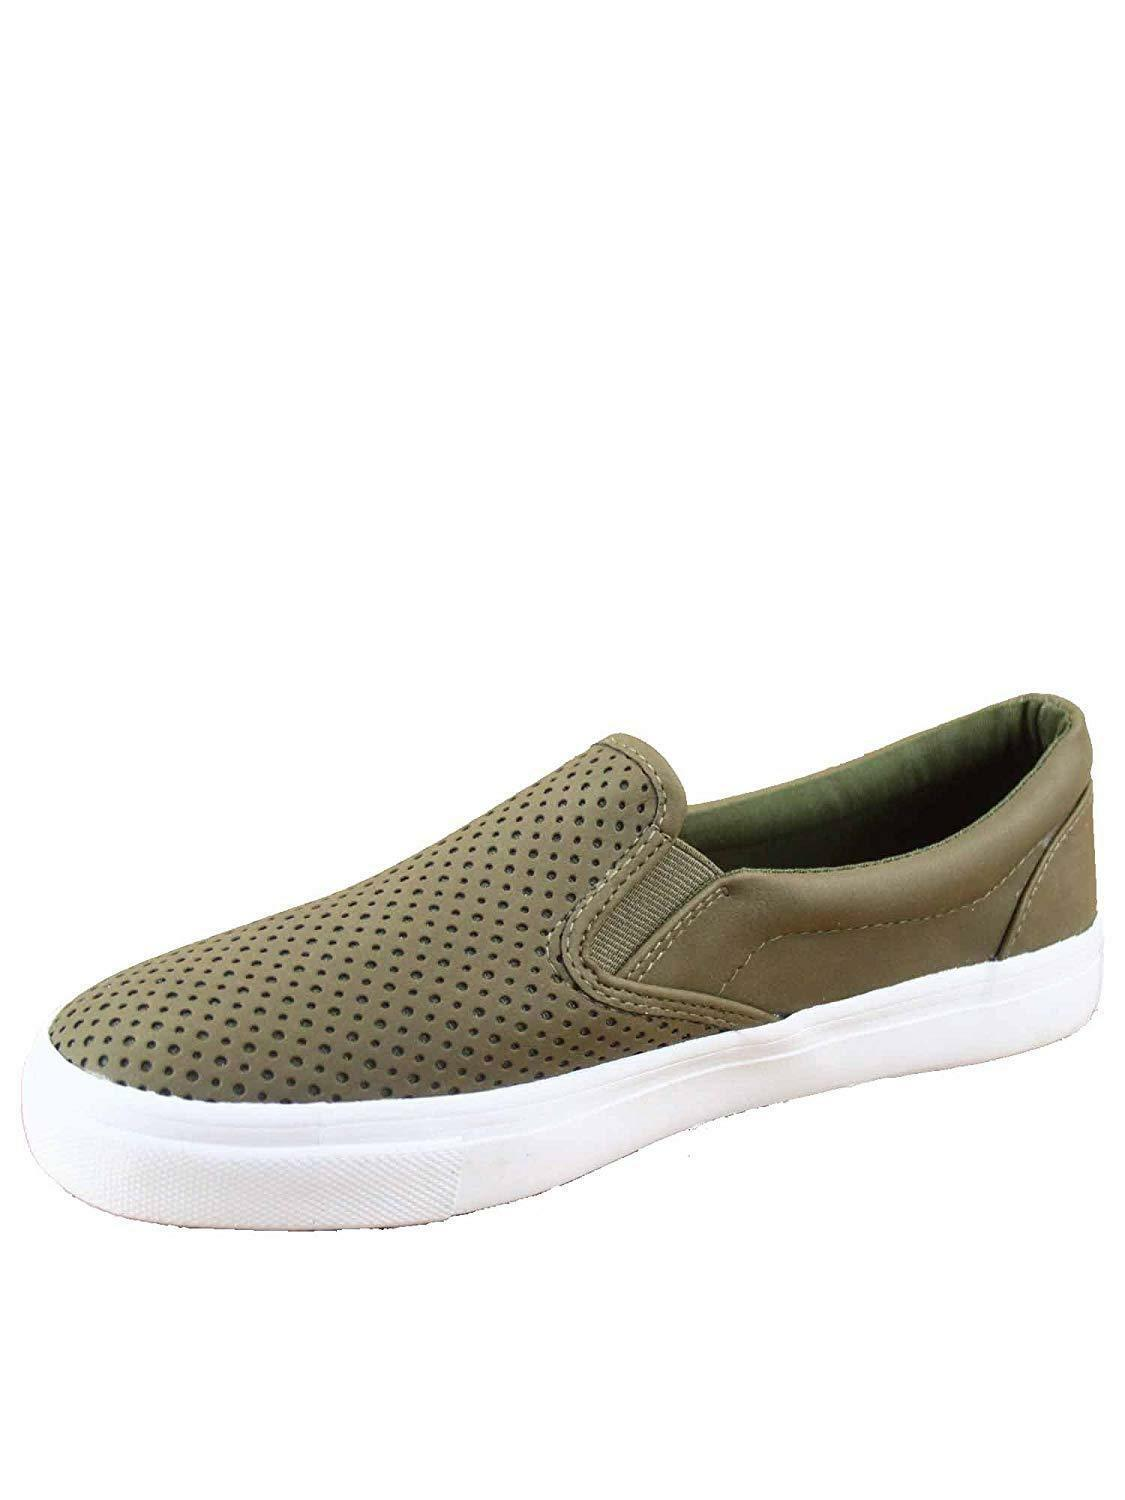 Soda Tracer-S Women's Cute Perforated Slip On Flat Round Toe Sneaker Shoes image 2